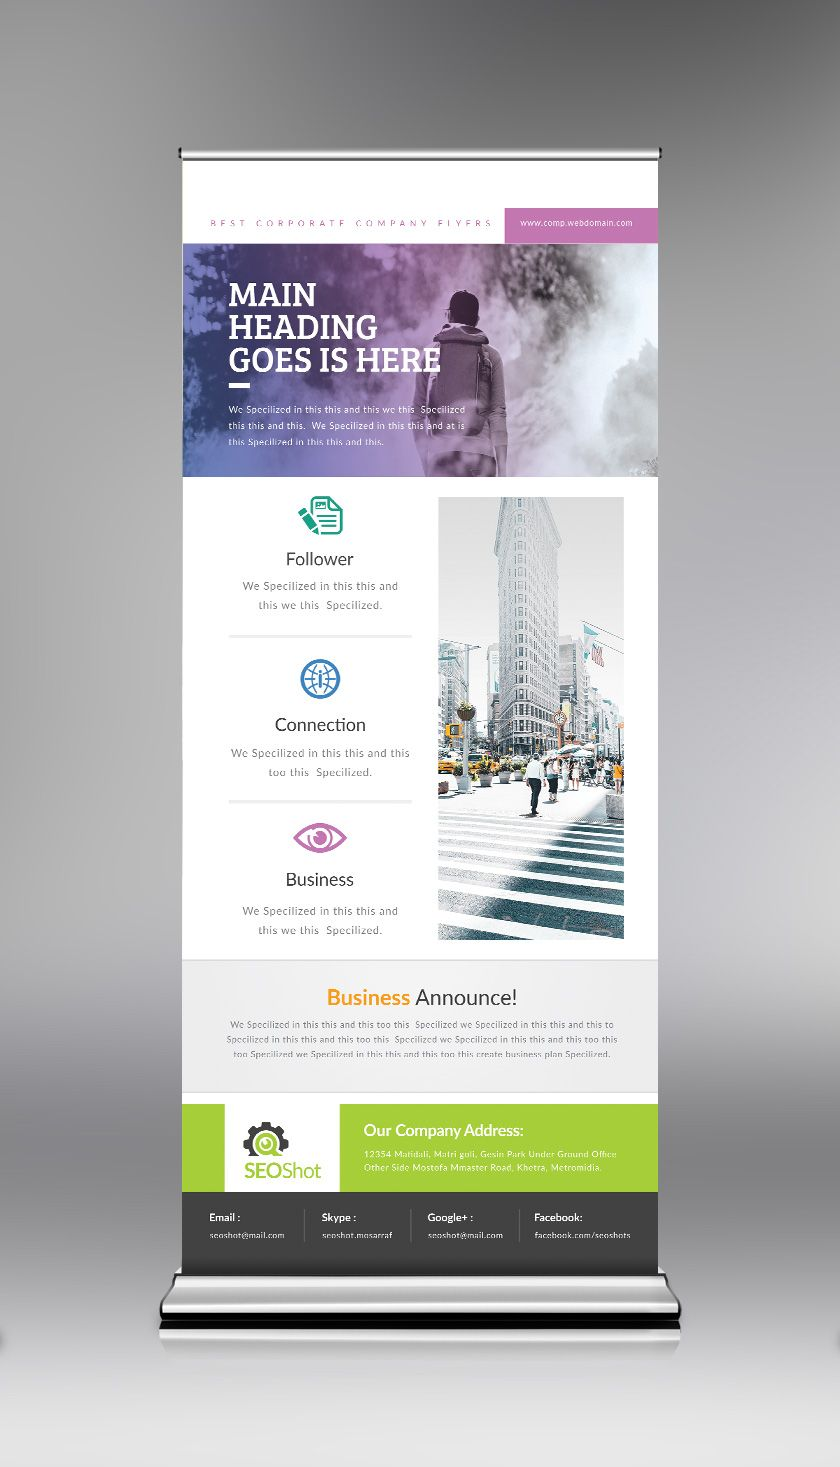 Psd Roll Up Design Template Graphic Templates Roll Up Design Standing Banner Design Pull Up Banner Design